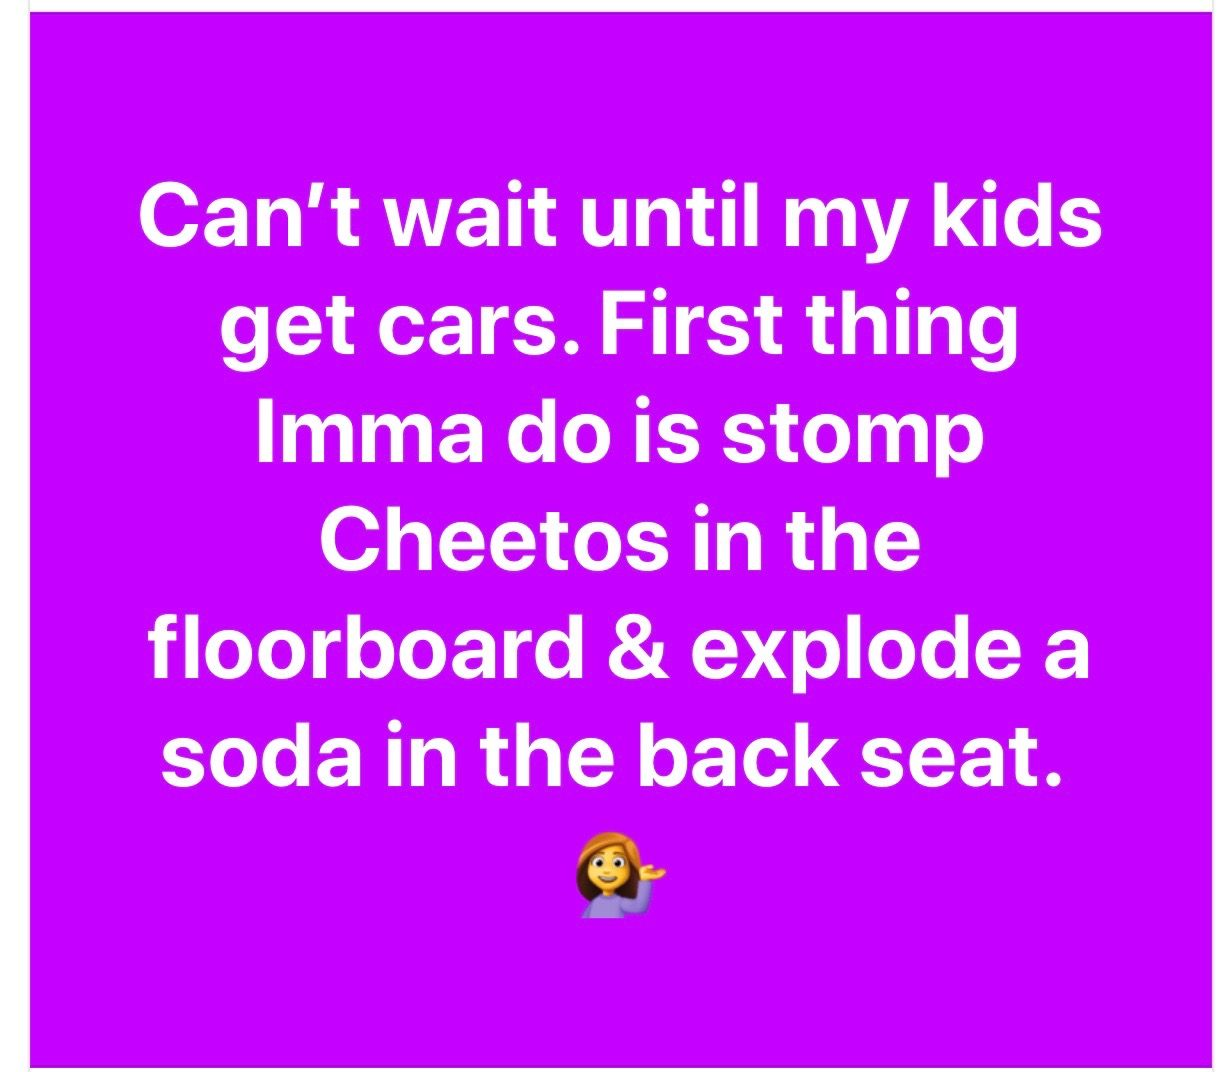 Pin By Marisa Ware On Funny Stuff Funny Mom Quotes Mom Humor Haha Funny